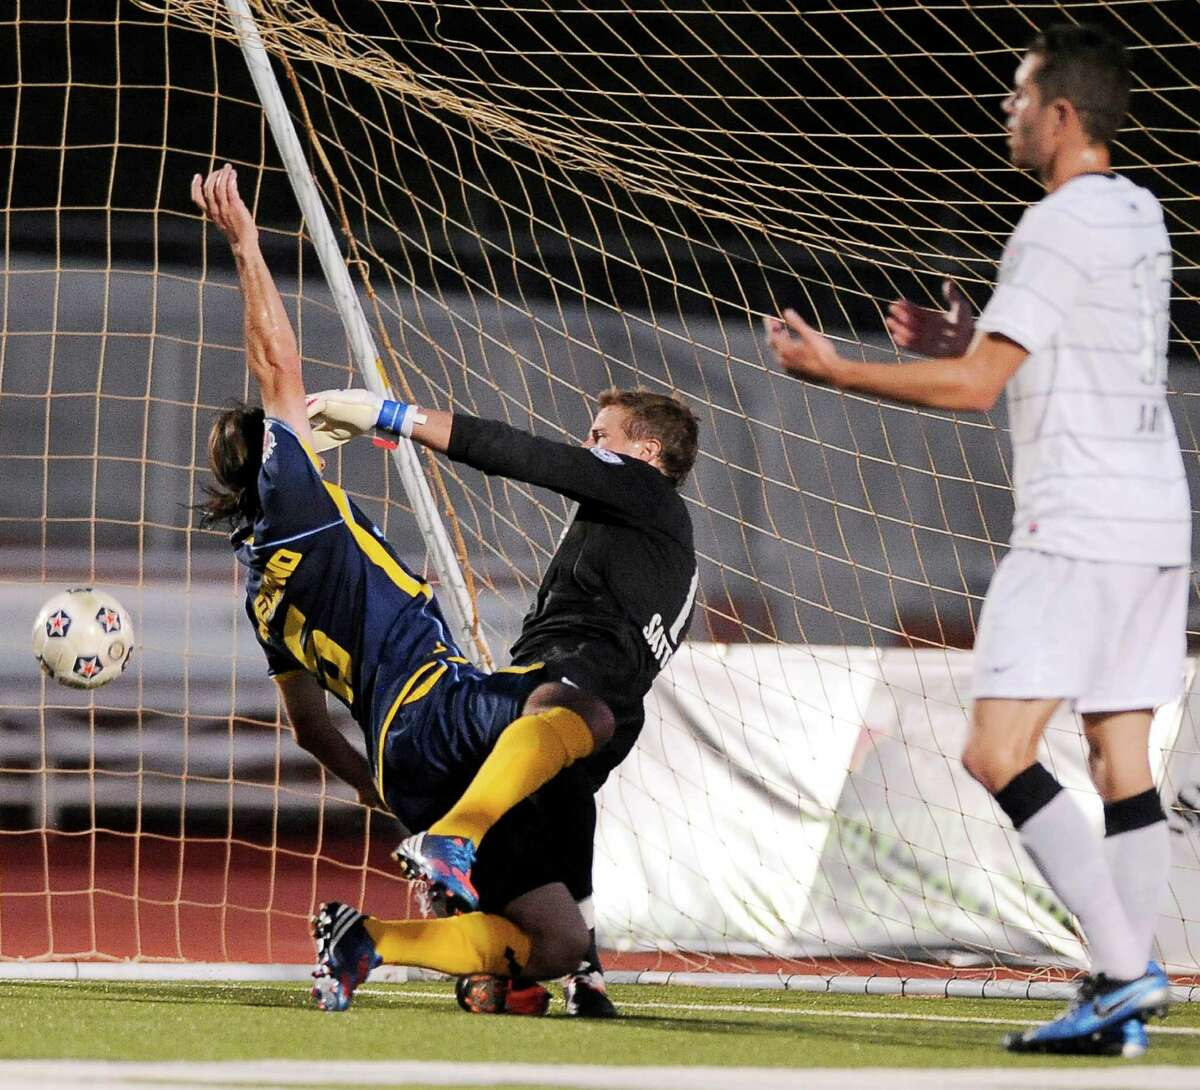 Minnesota Stars' Kevin Friedland, left, collides with San Antonio Scorpions goalkeeper Daryl Sattler, which resulted in a Minnesota goal in the second half of an NASL soccer game, Sunday, Sept. 23, 2012, at Heroes Stadium in San Antonio. San Antonio and Minnesota tied 1-1.